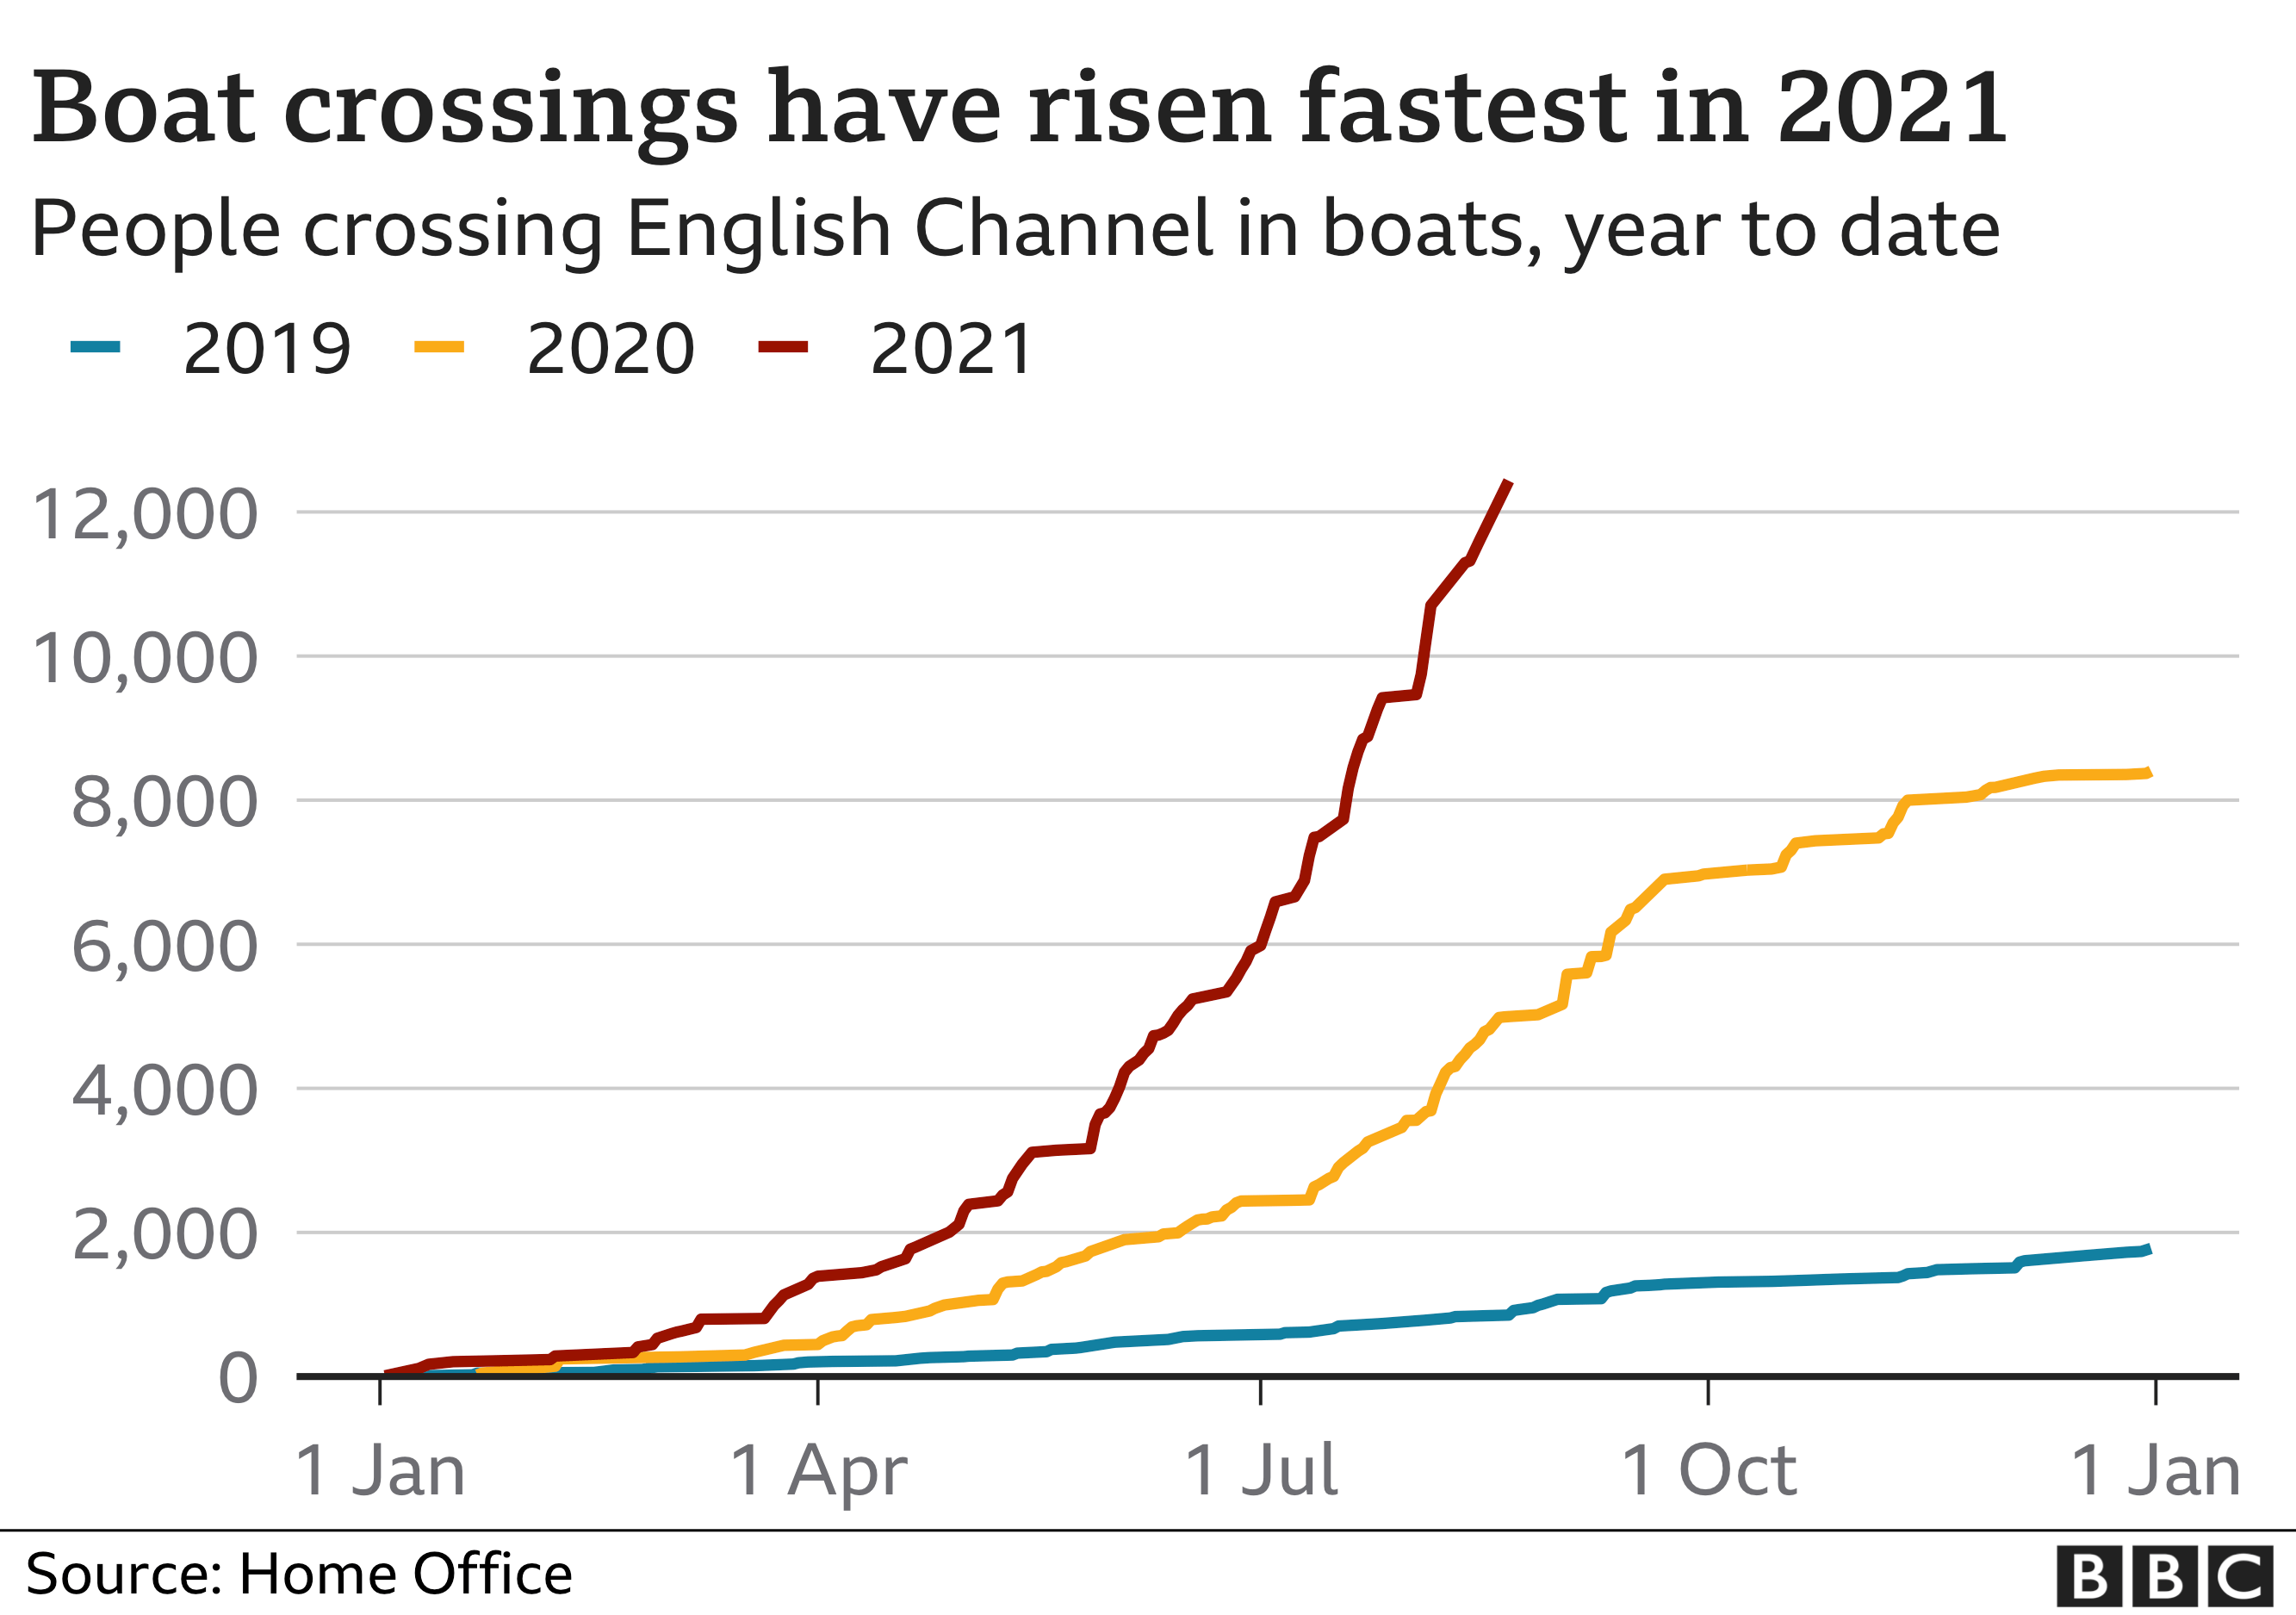 Chart showing number of boat crossings